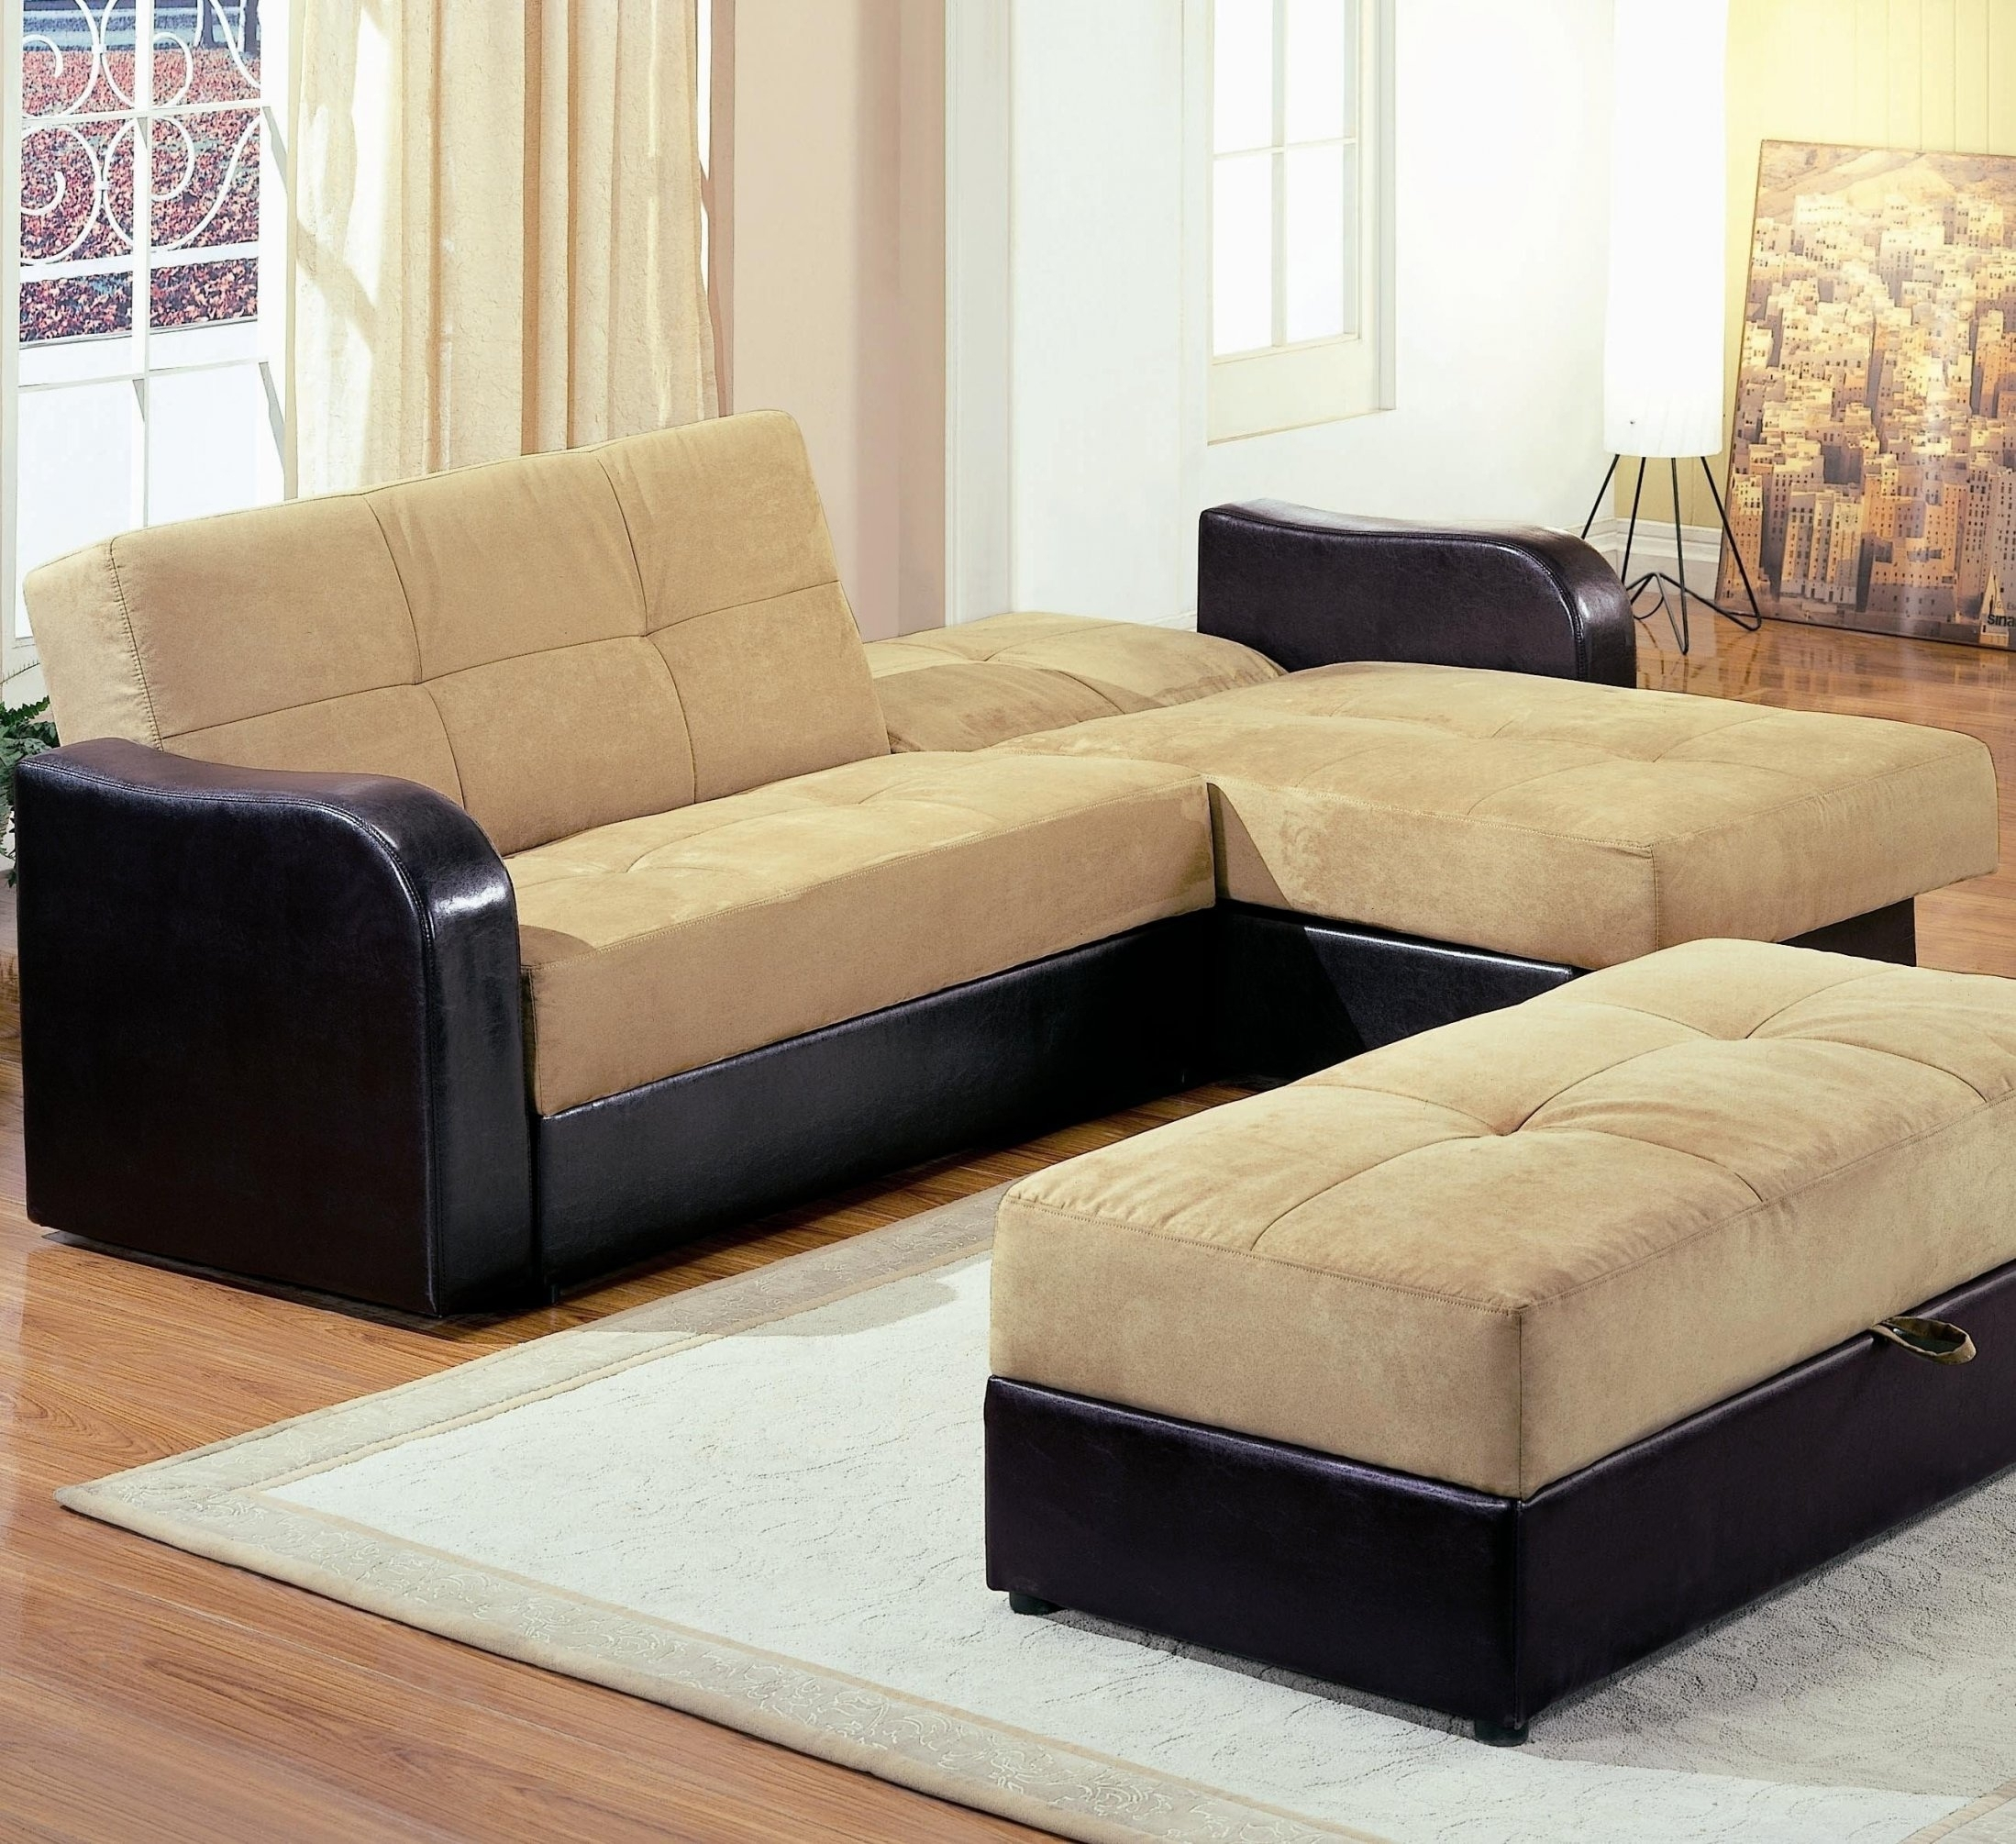 Sectional Sleeper Sofa With Ottoman For Sectional Sleeper Sofas With Ottoman (View 13 of 15)